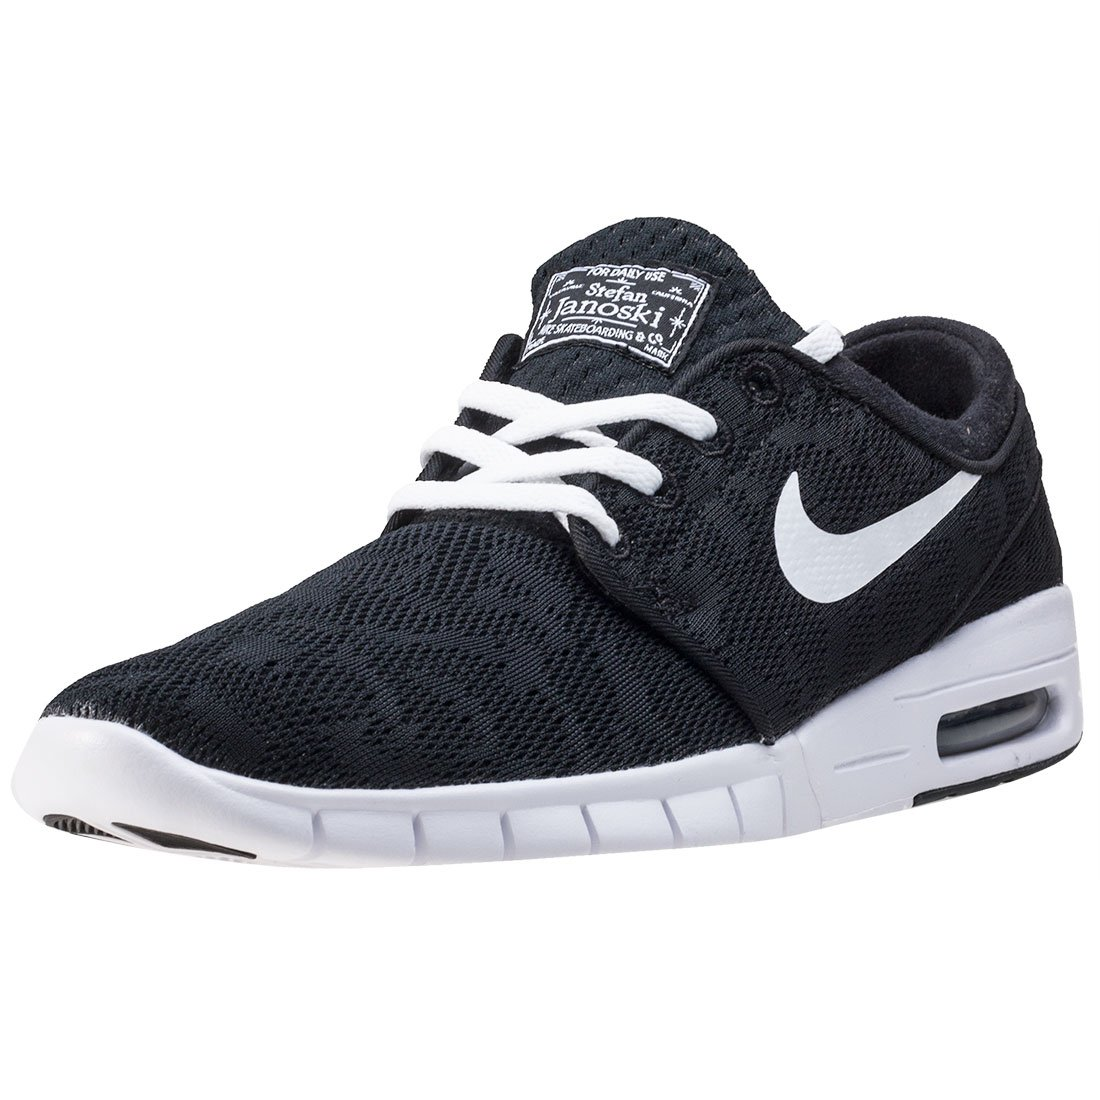 size 40 dffdf 6f568 Get Quotations · Nike Mens Stefan Janoski Max BlackWhiteSneakers - 13  D(M) US